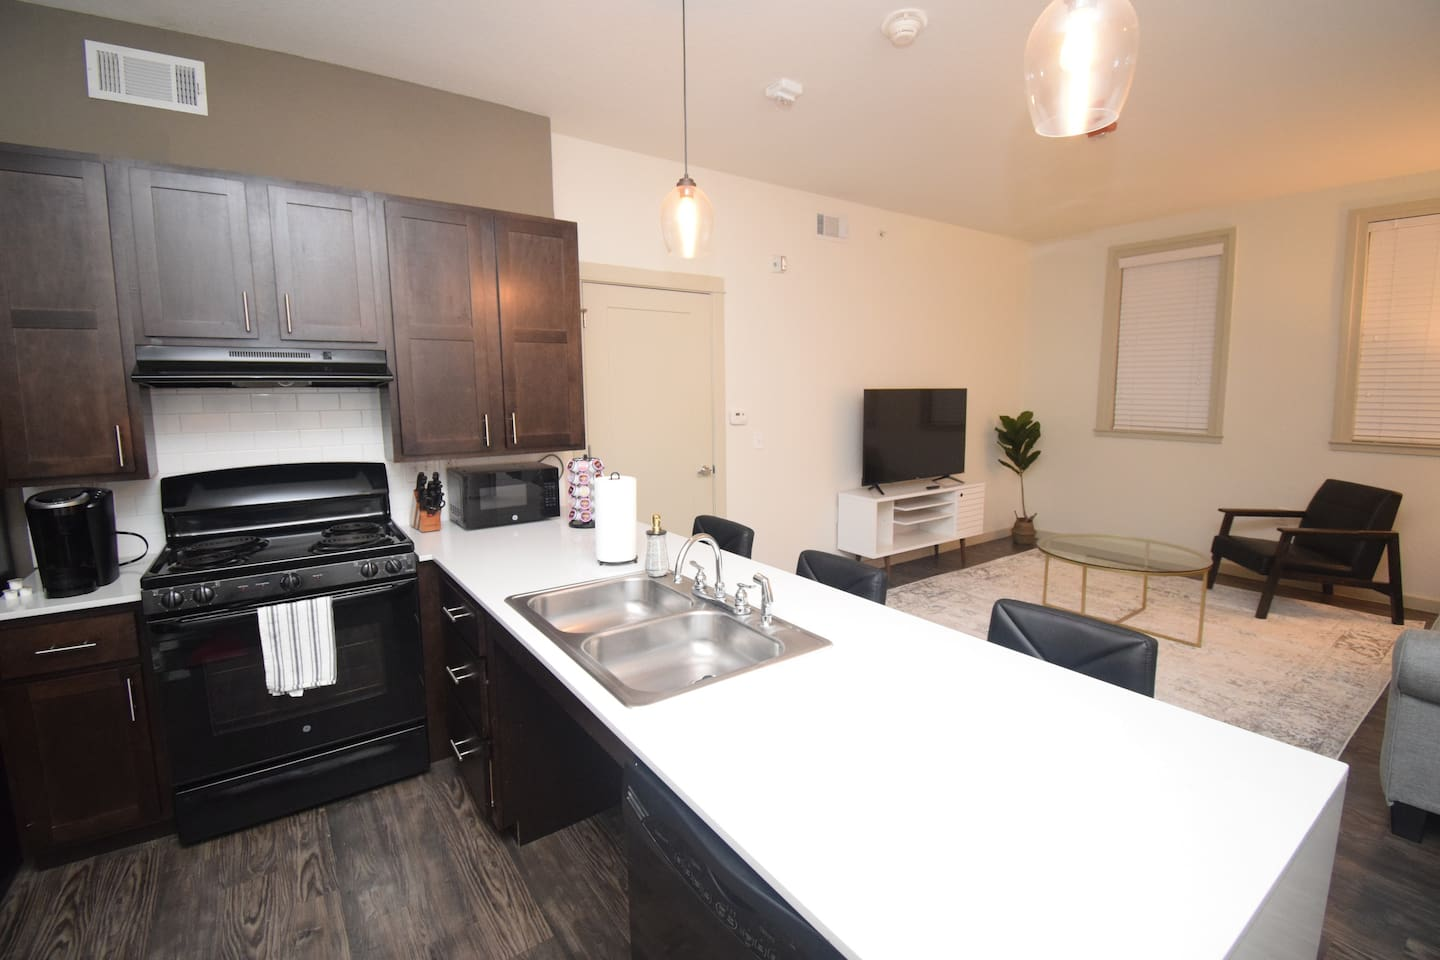 Enjoy Bentonville at its finest with this luxury apartment! Close to everything enjoy walking to Bentonville Square, admiring Crystal Bridges, or hitting up some of the local eateries. This apartment is close to everything you could want!